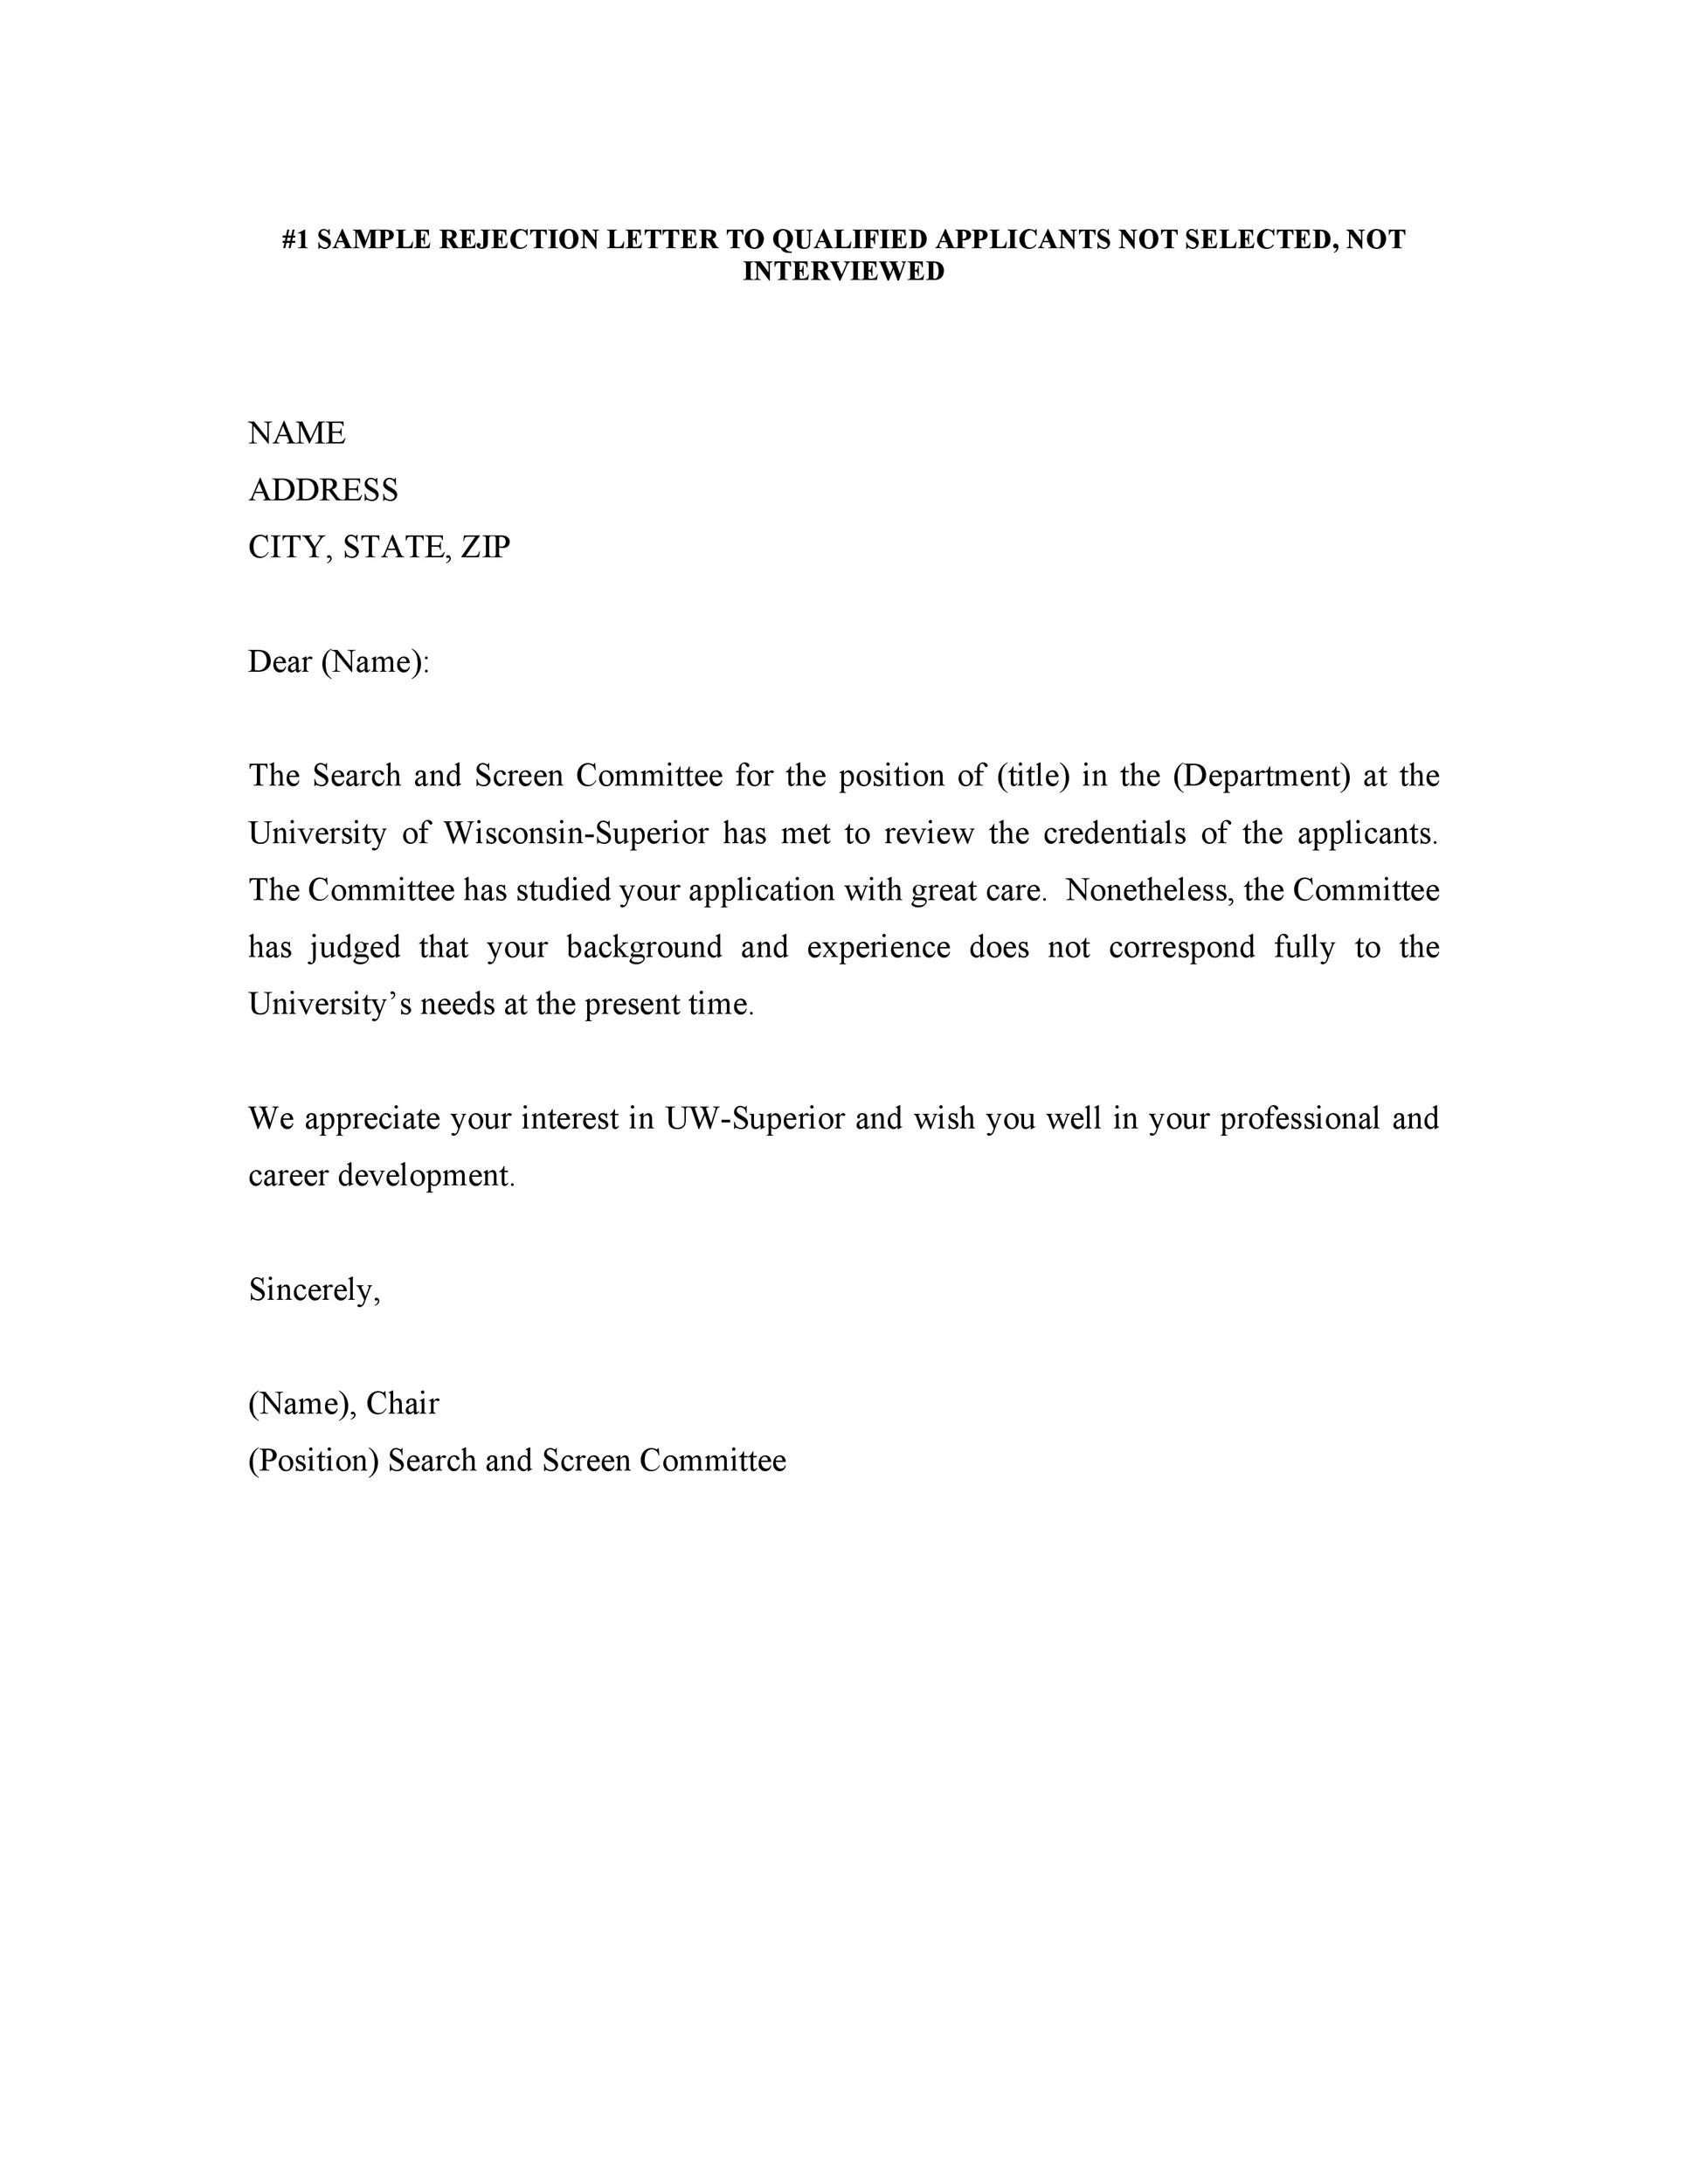 Sample Rejection Letter For Job Applicant from templatelab.com